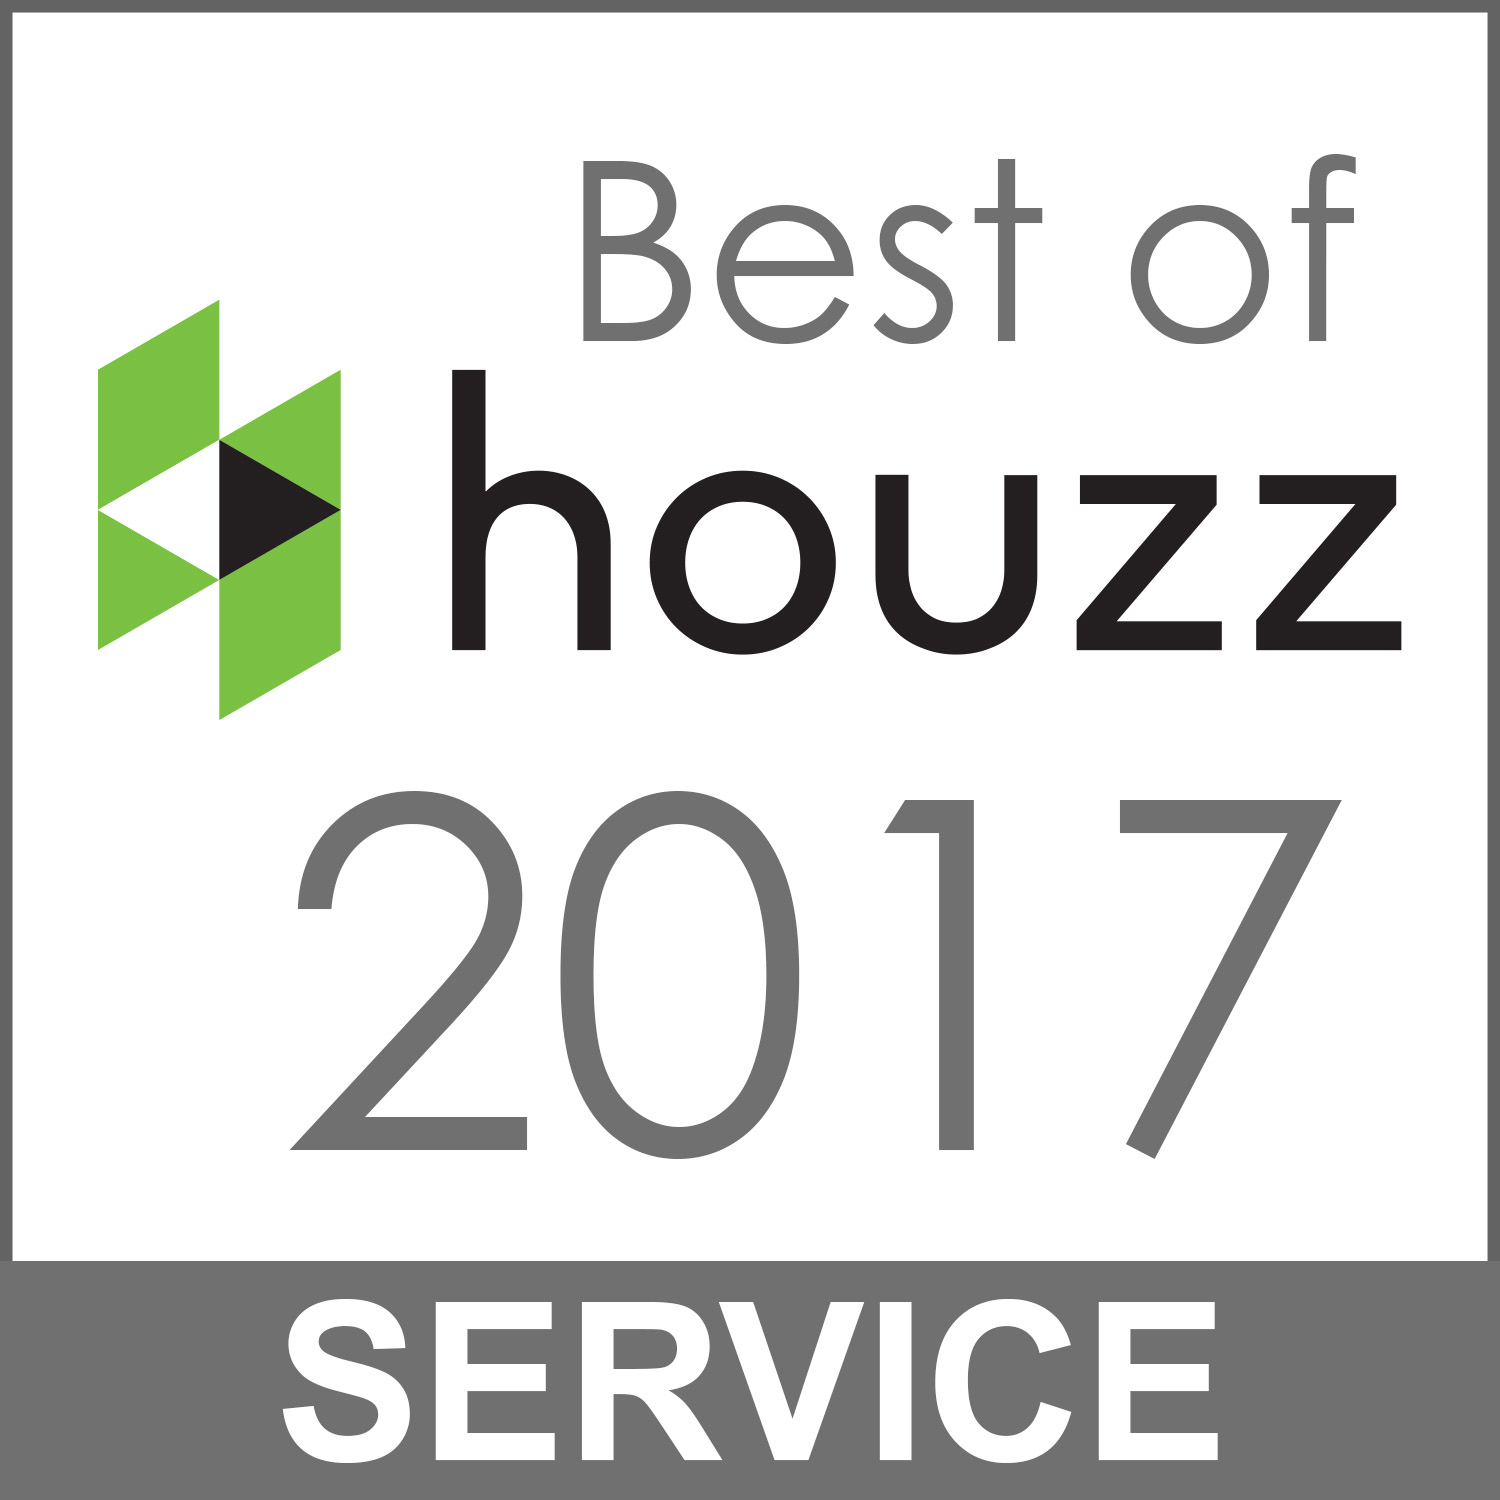 Encouraging Our Awards Honors Epic Interiors Construction Houzz Red Policy Houzz Return Policy Rugs houzz 01 Houzz Return Policy